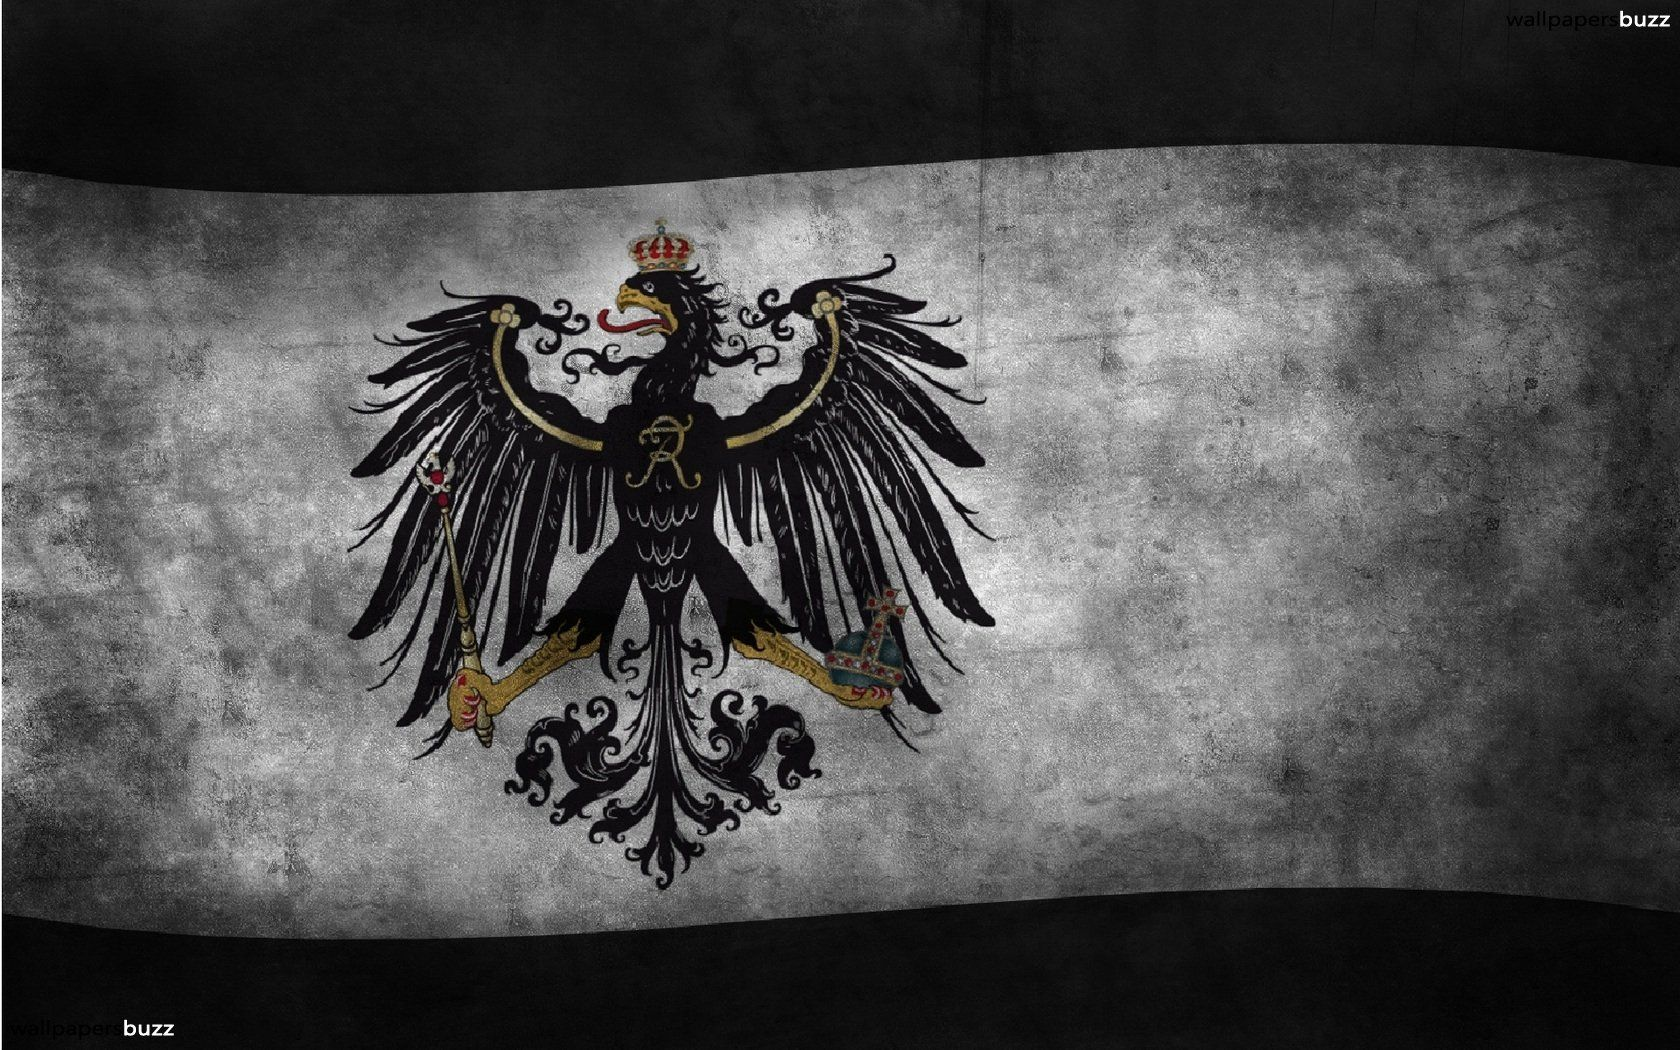 1680x1050 The flag of Prussia HD Wallpaper